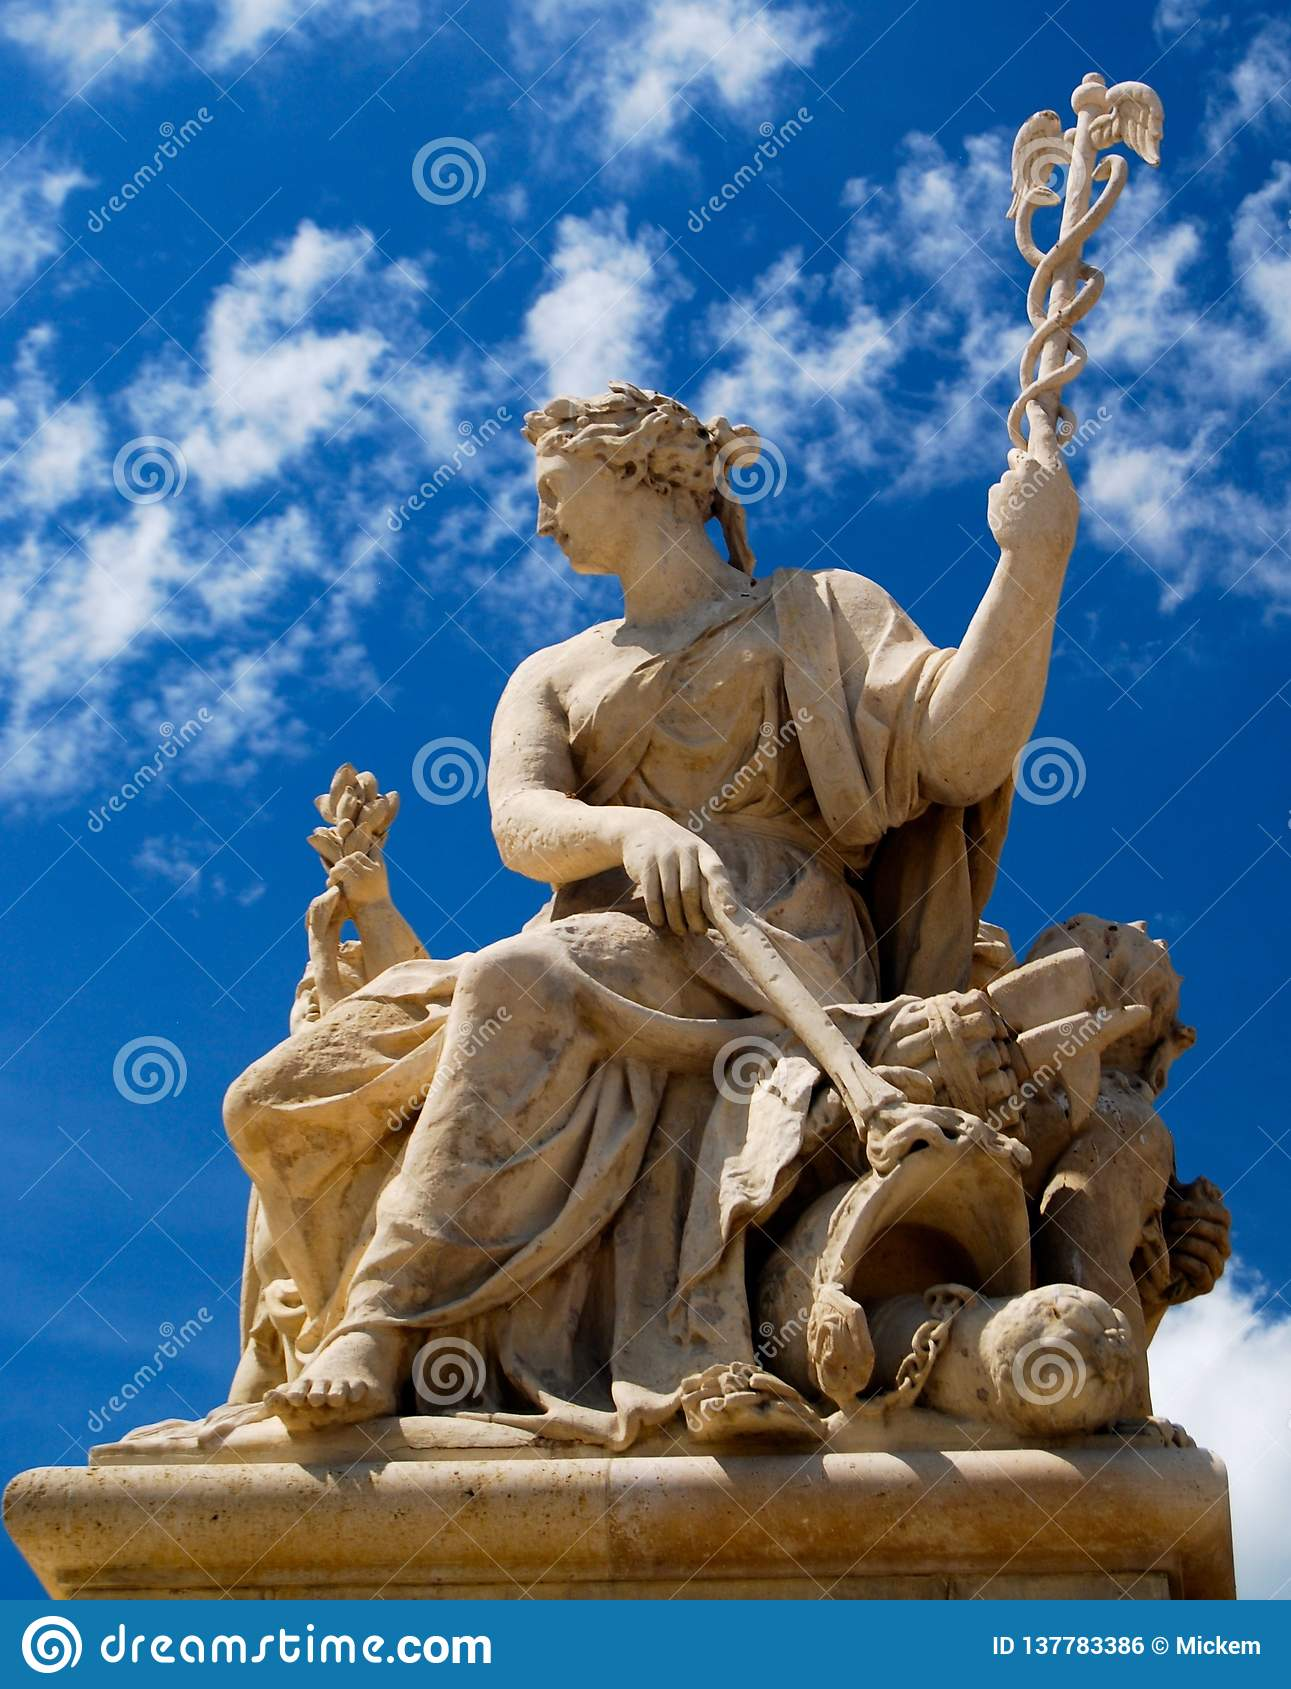 Palace of Versailles France Statue with Staff of Caduceus